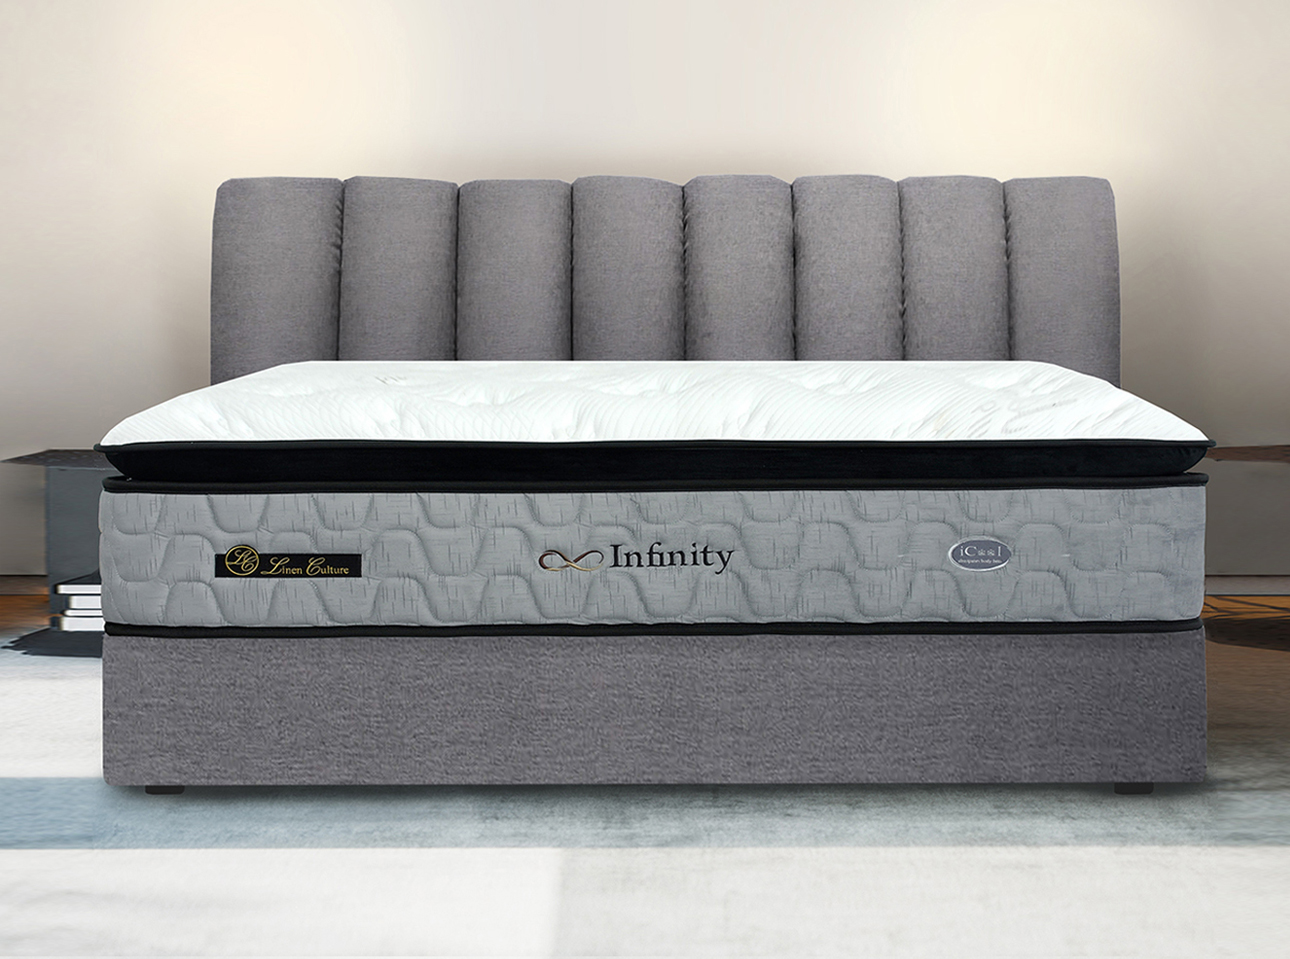 Infinity Mattress features a durable, long-lasting pocket spring support